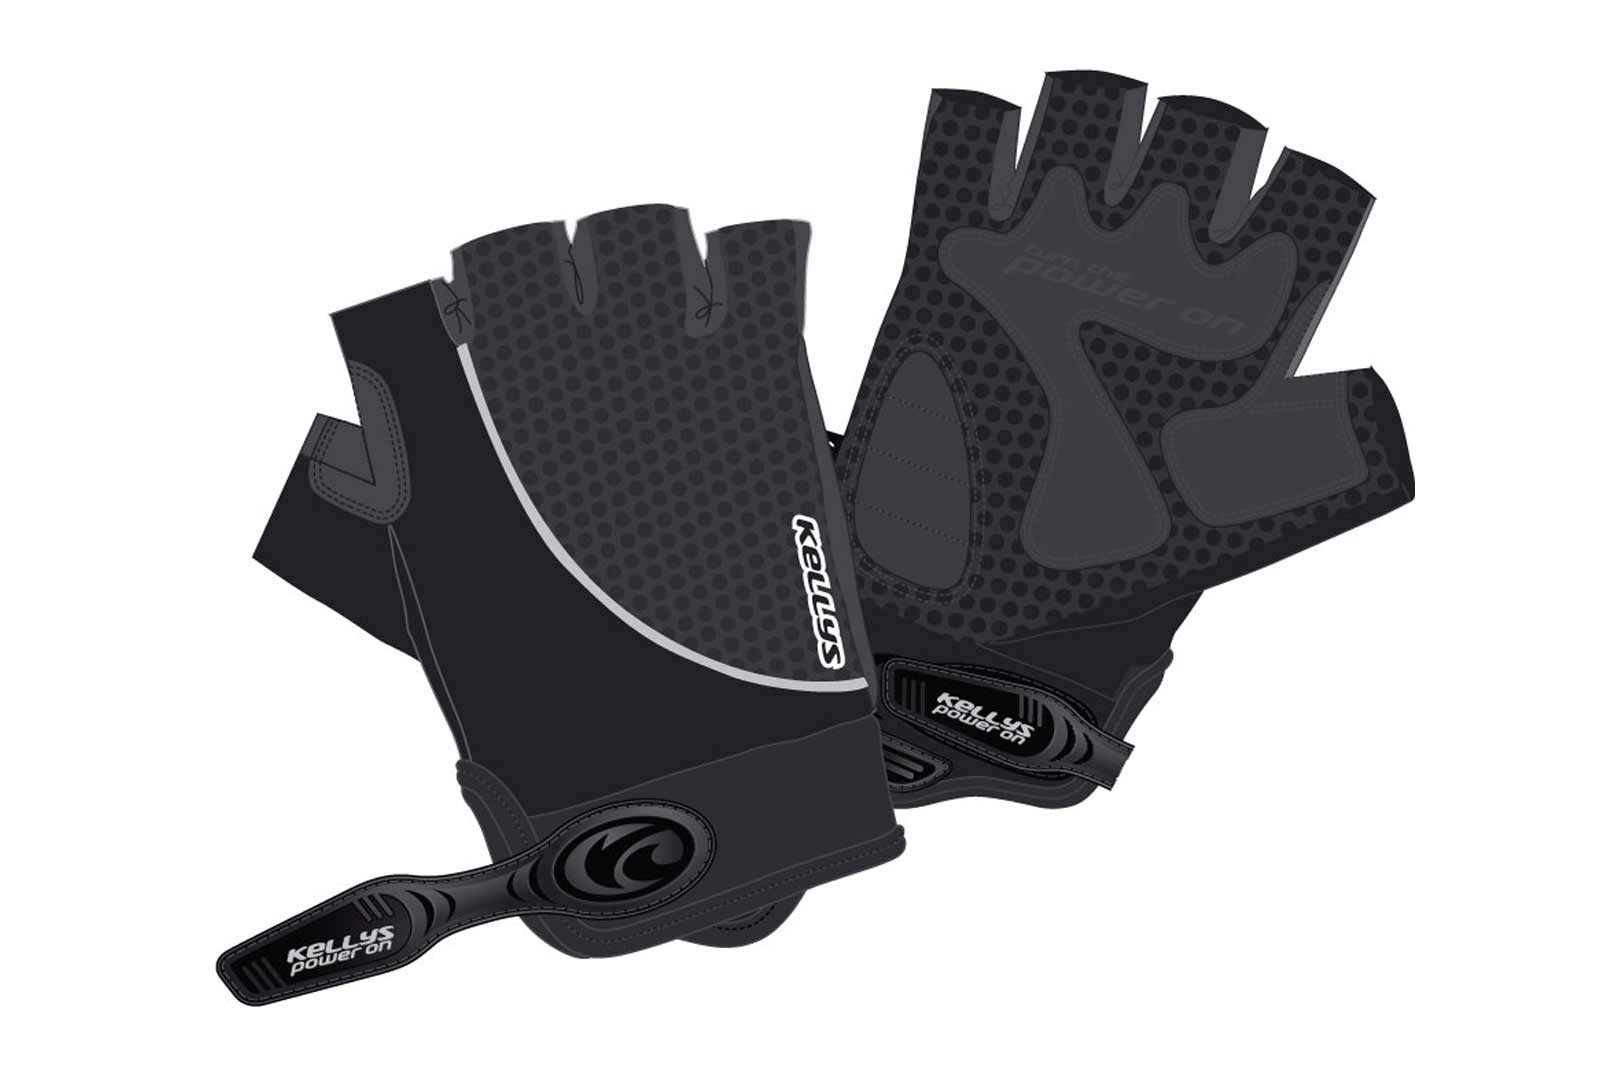 Handschuhe SEASON black S - Mile-Multisport